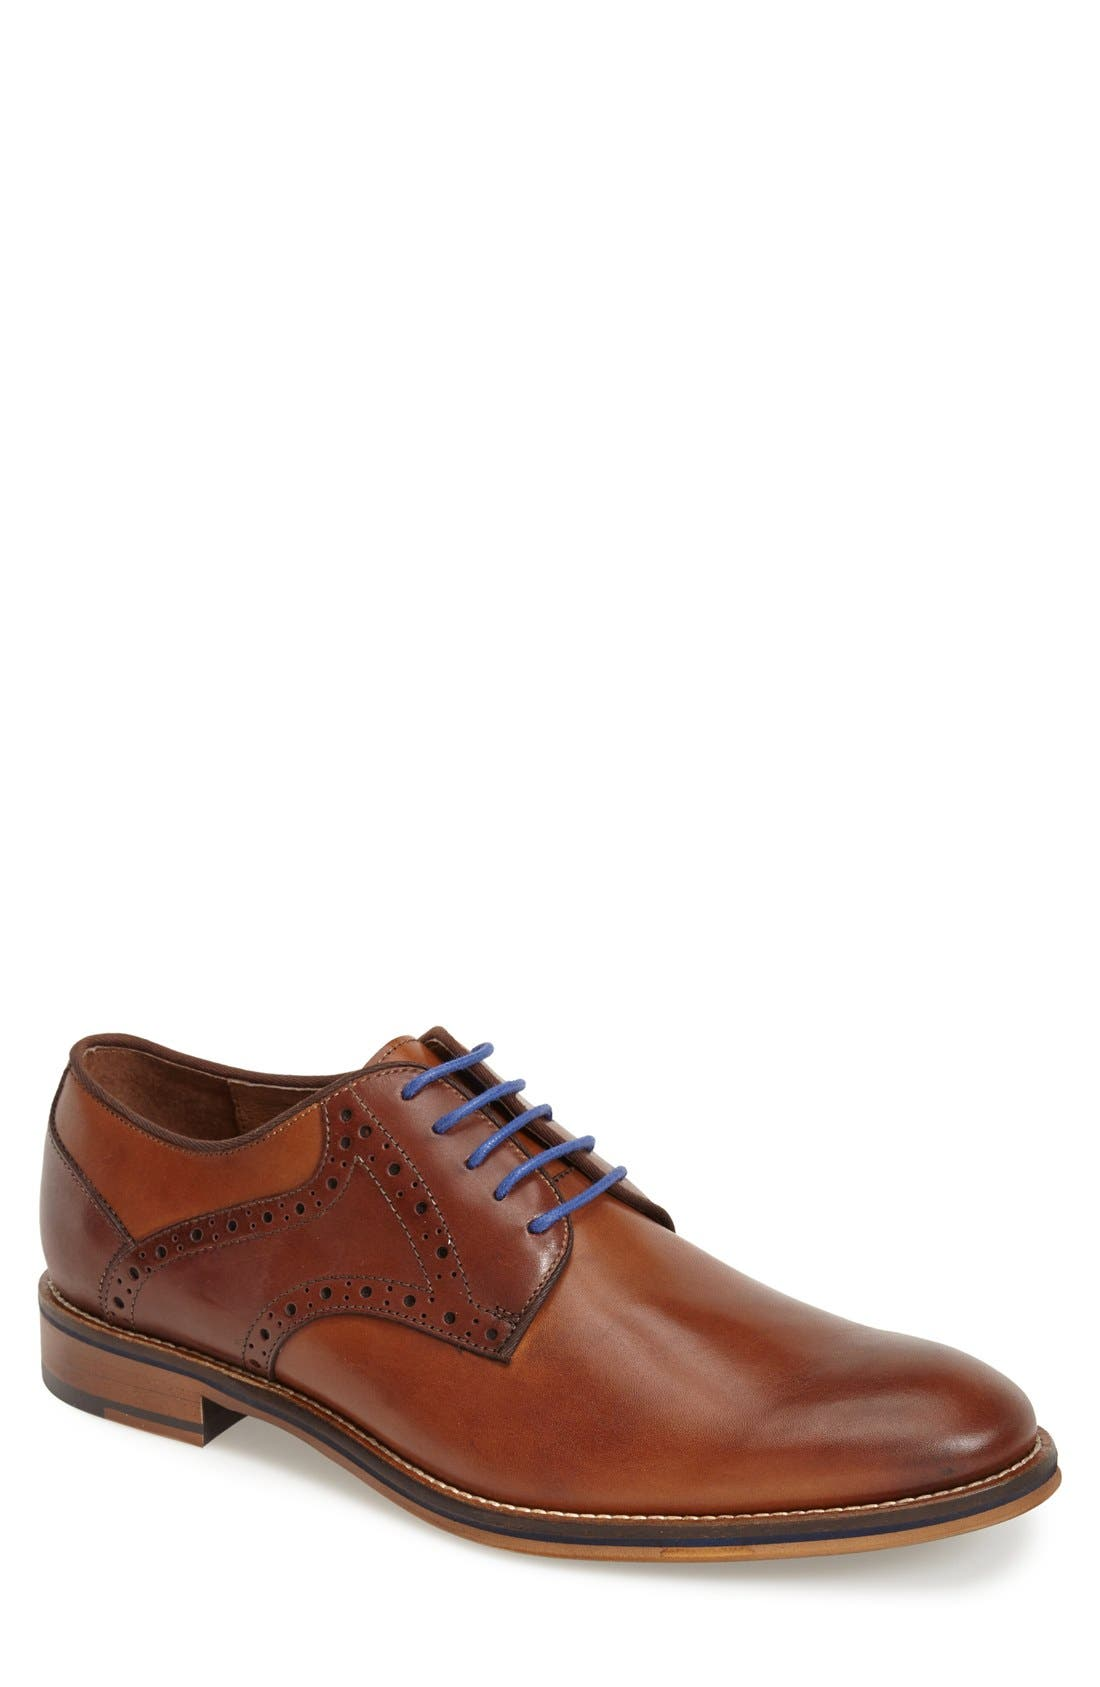 JOHNSTON & MURPHY Conard Saddle Shoe, Main, color, TAN/ DARK BROWN